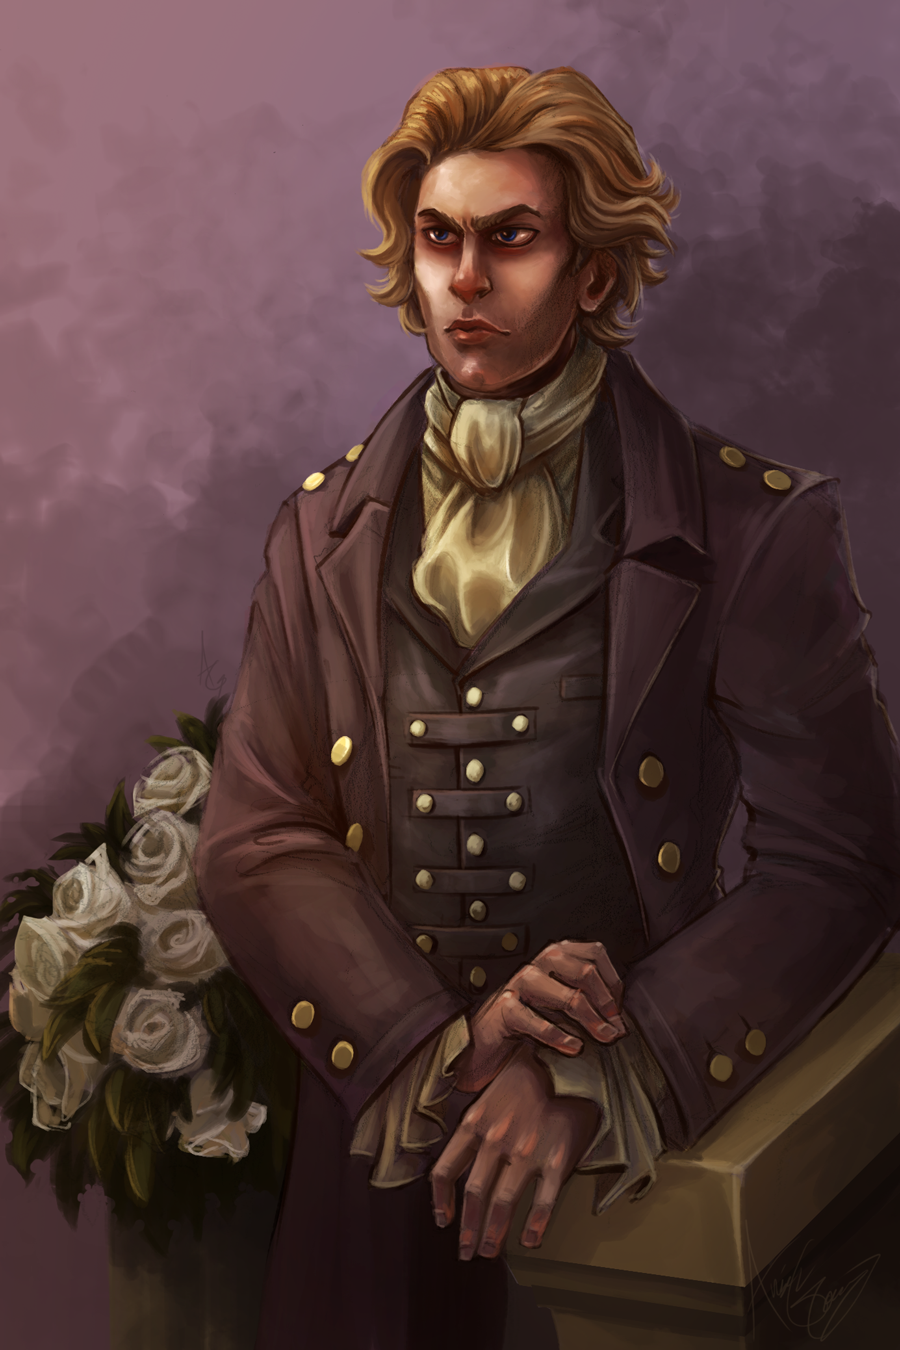 Most recent image: The Picture of Dorian Gray